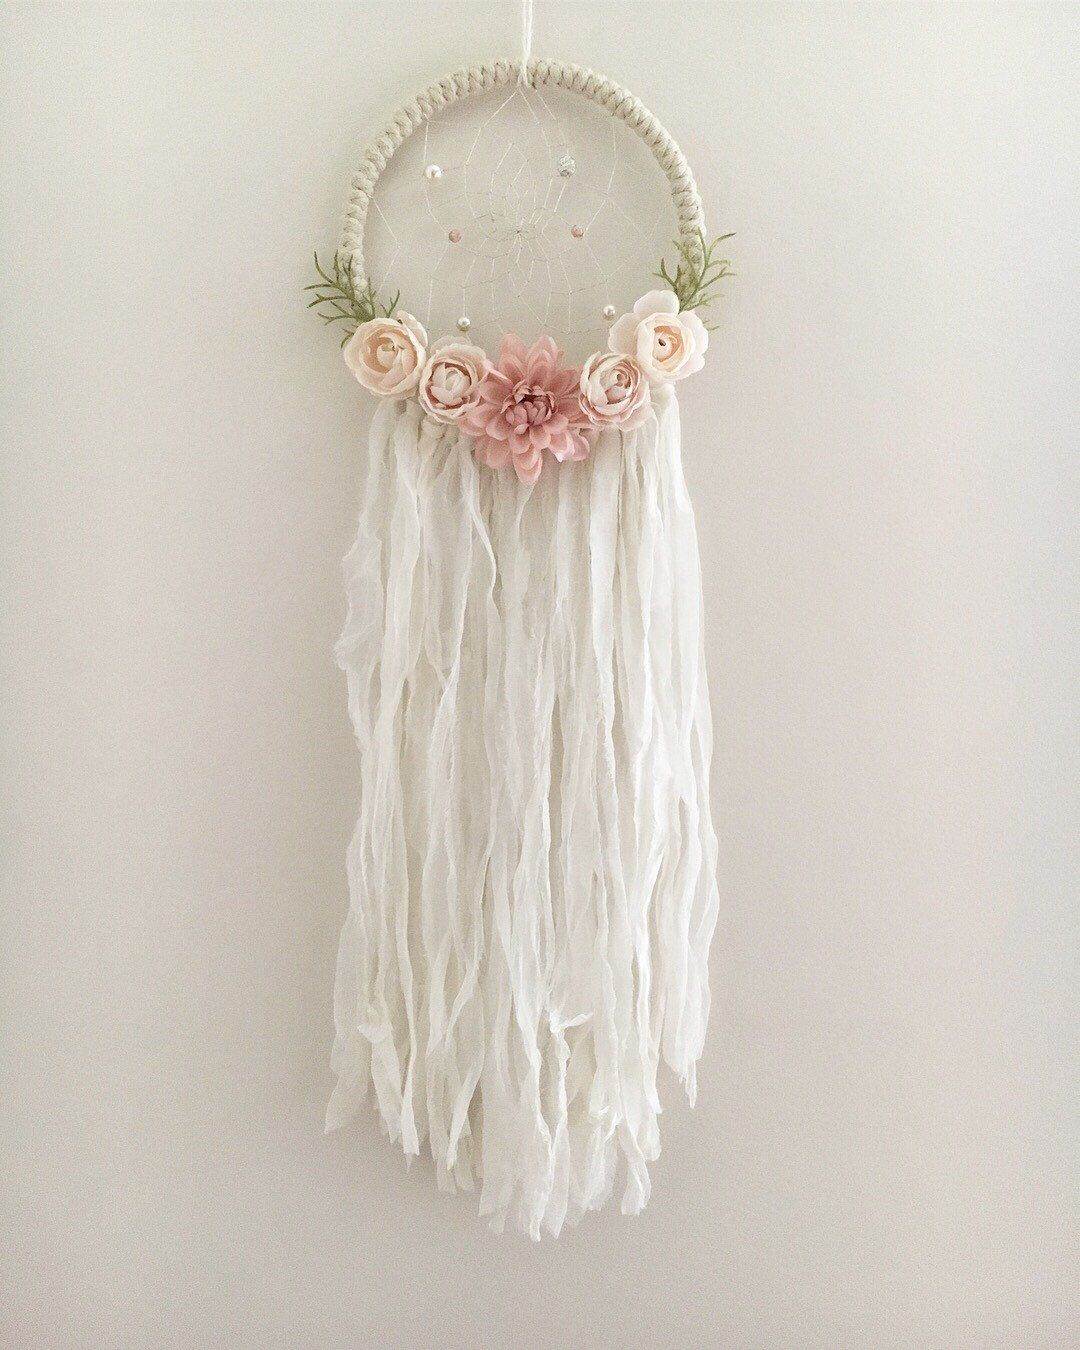 List of Cool DIY Dream Catcher from etsy.me